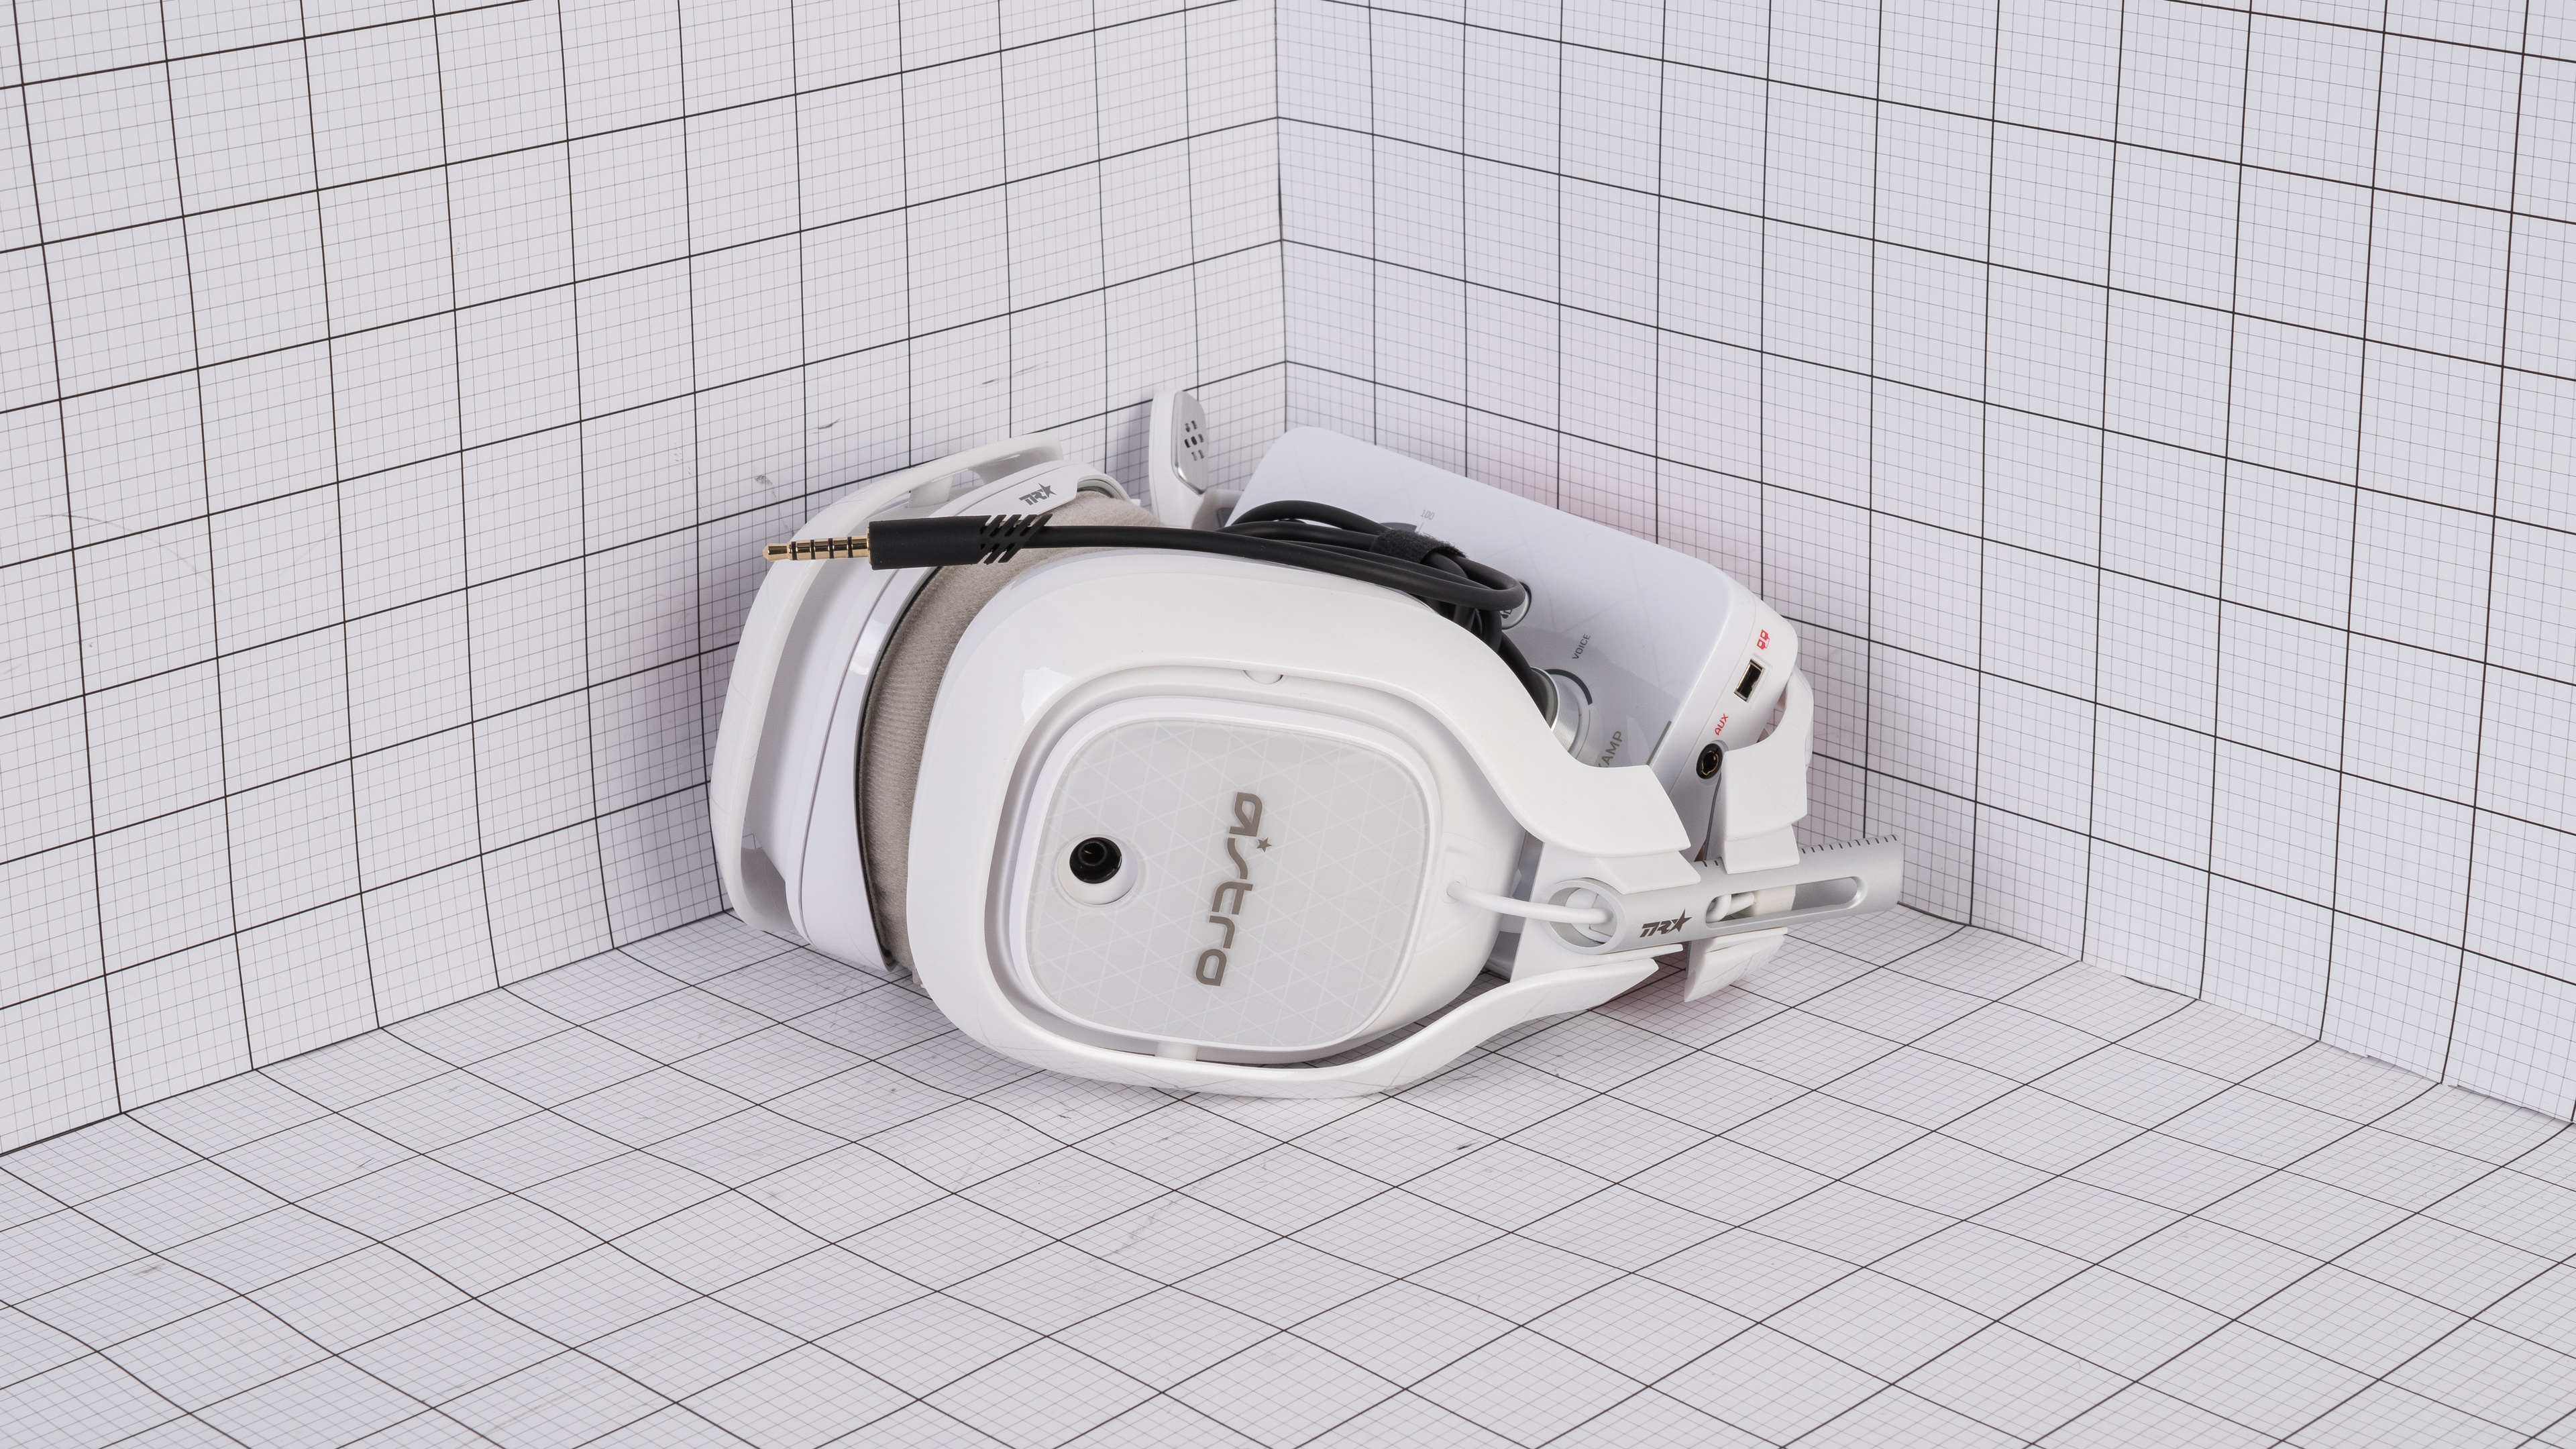 Astro A40 Tr Headset Mixamp Pro Review